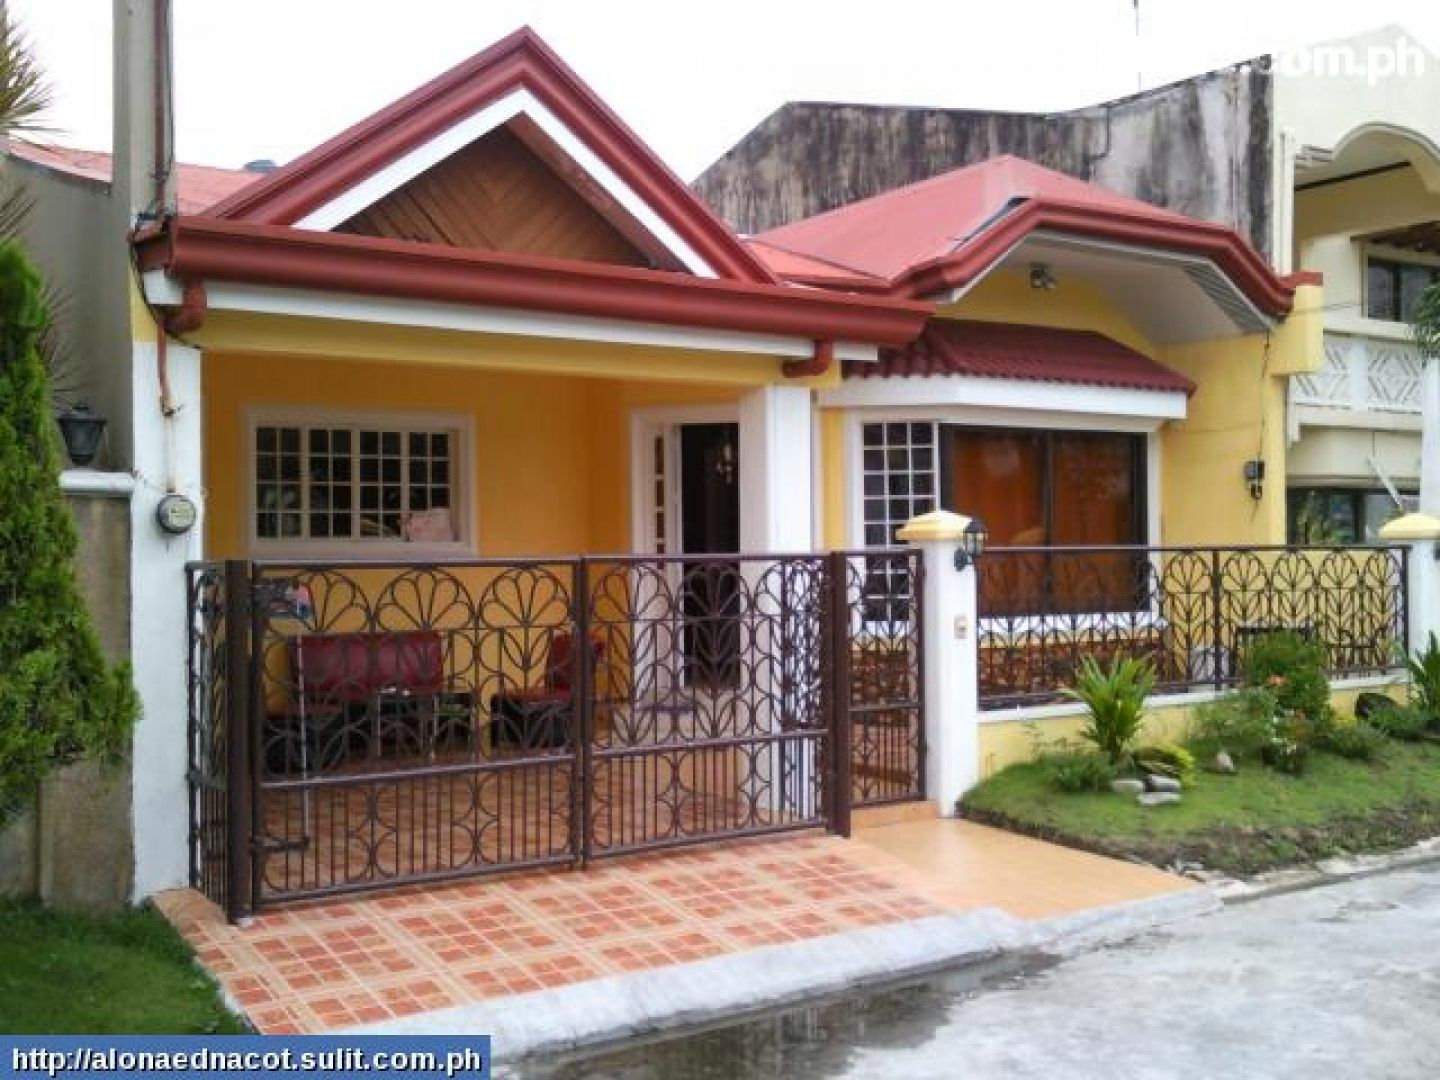 House design philippines bungalow - Floor Plans 3 Bedroom Bungalow House Plans Philippines 3 Bedroom